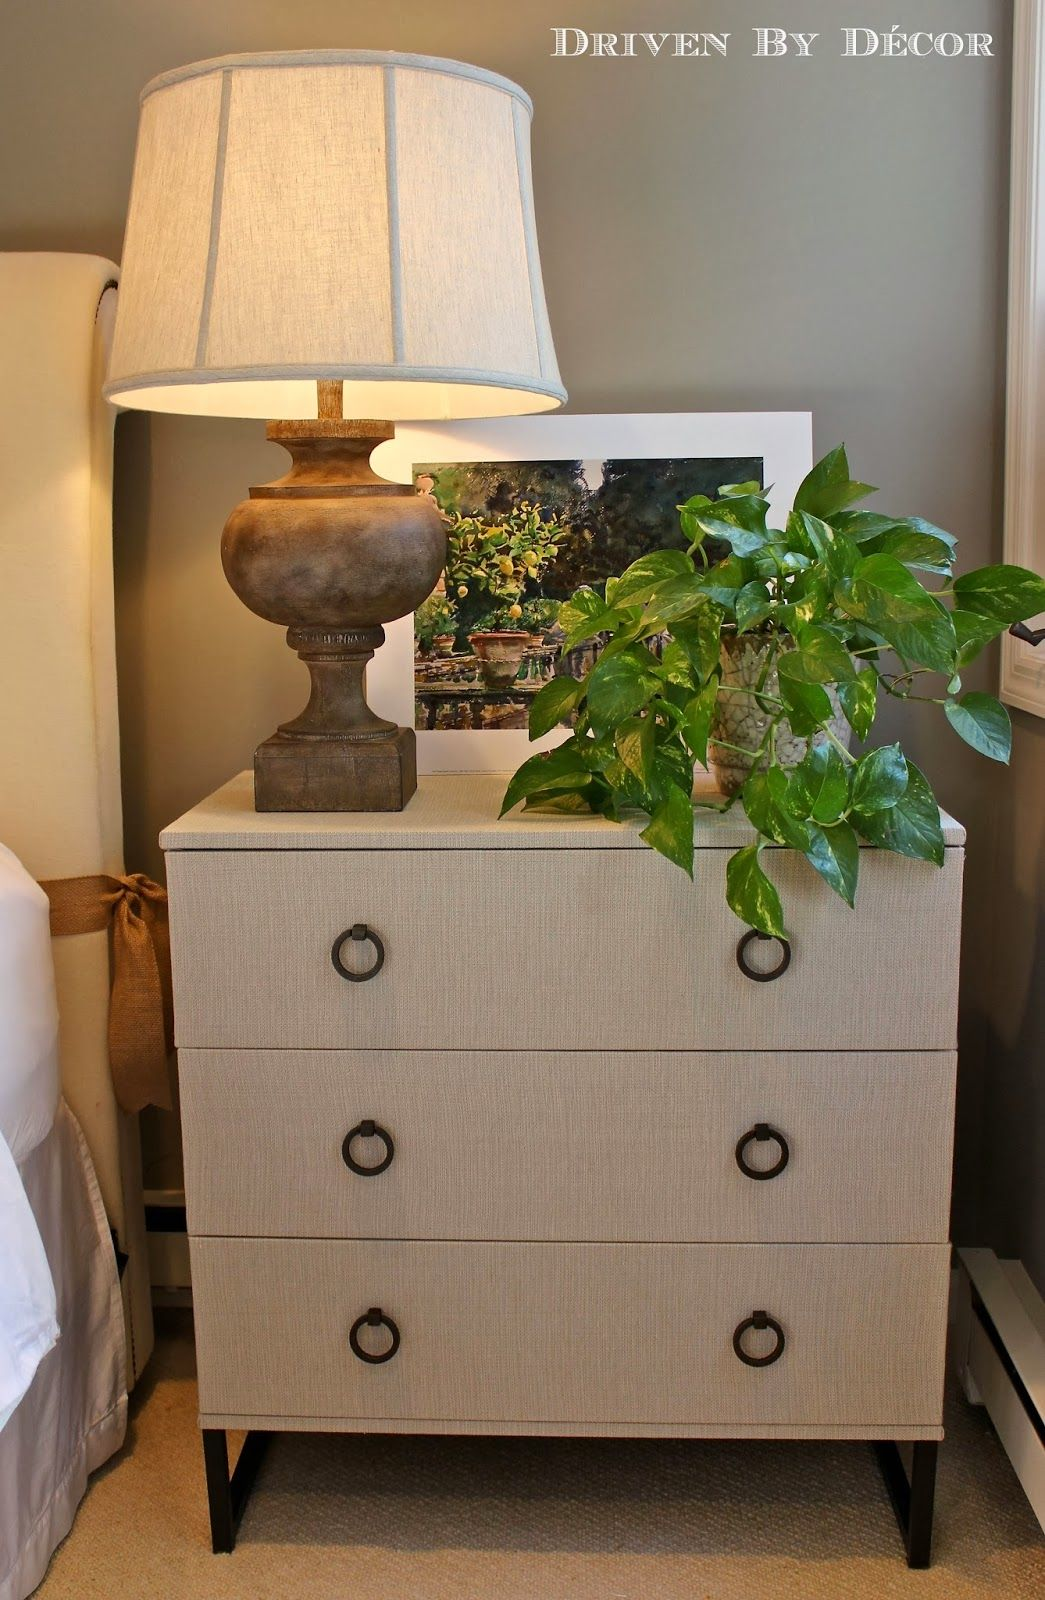 IKEA Hack Fabric Covered TRYSIL Chest Driven by Decor